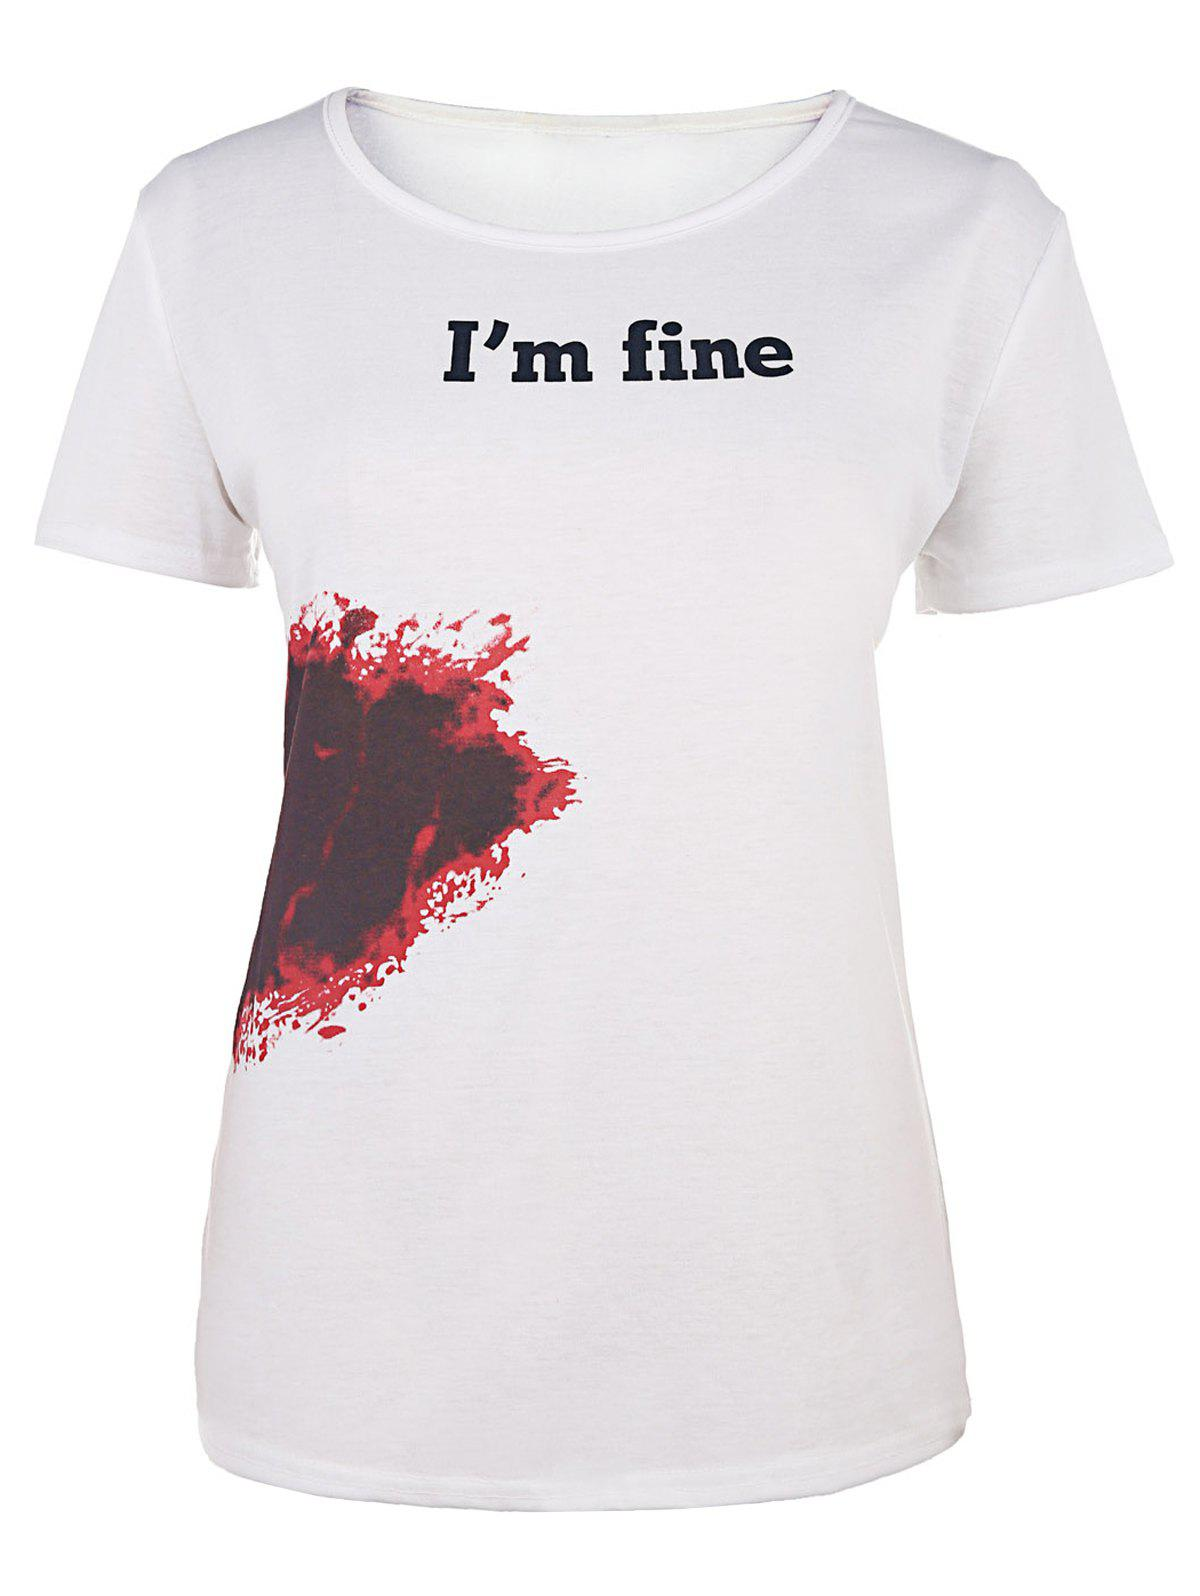 Dresslily USA Casual Bloodstain Print Round Neck Short Sleeve T-Shirt For Women